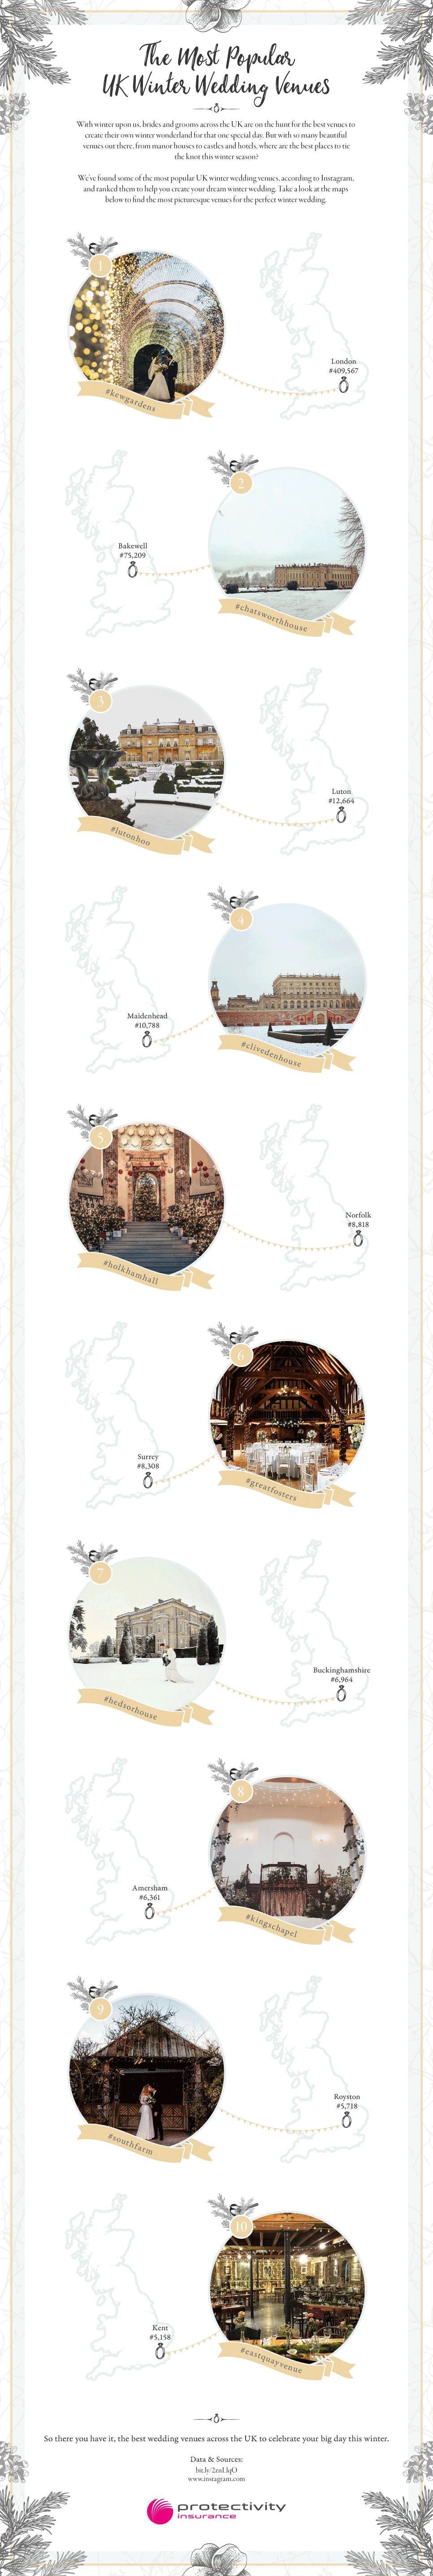 Infographic of the most popular wedding venues